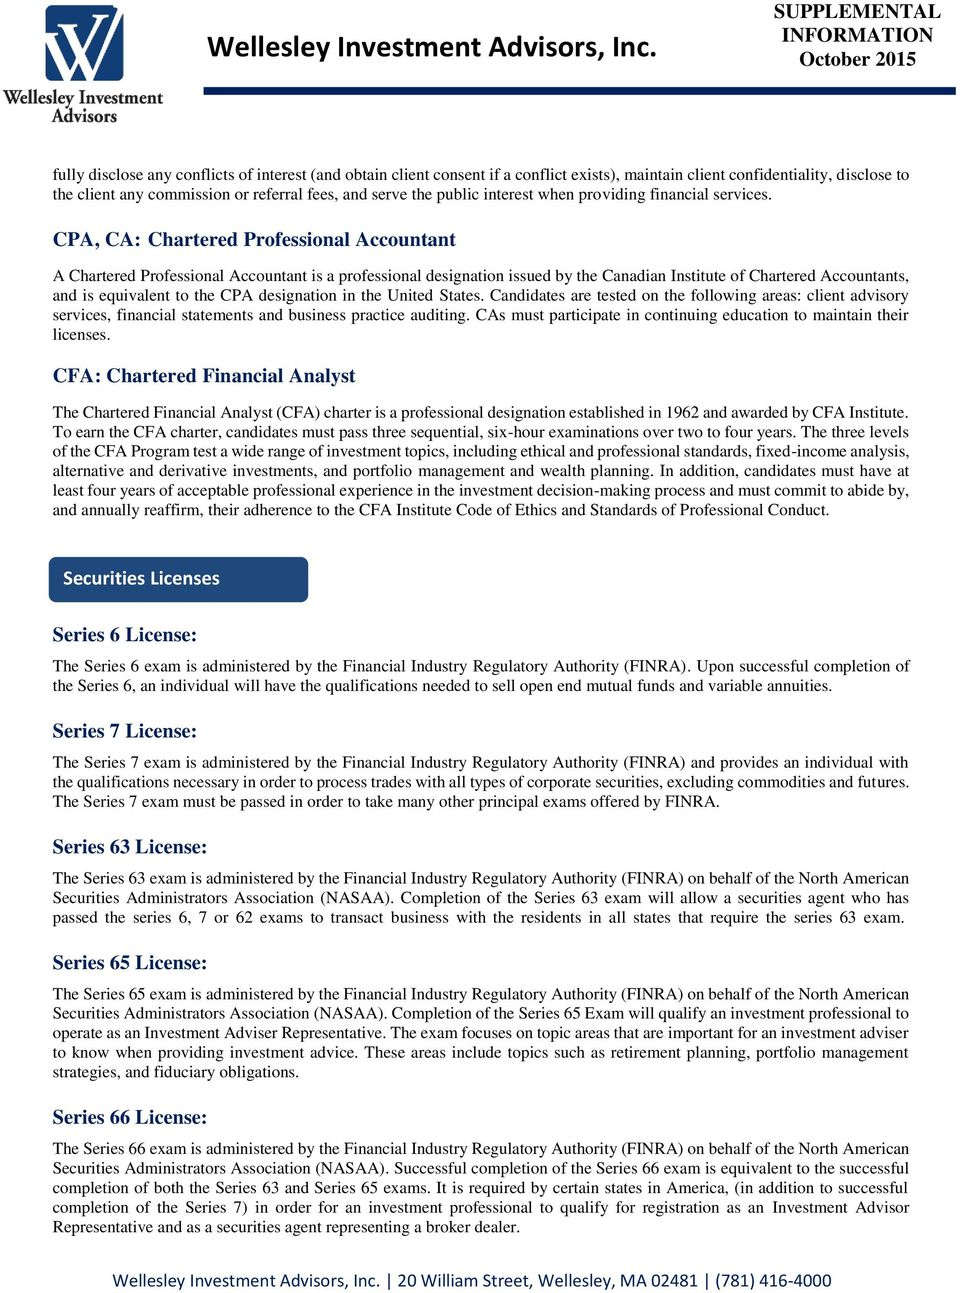 CPA, CA: Chartered Professional Accountant A Chartered Professional Accountant is a professional designation issued by the Canadian Institute of Chartered Accountants, and is equivalent to the CPA